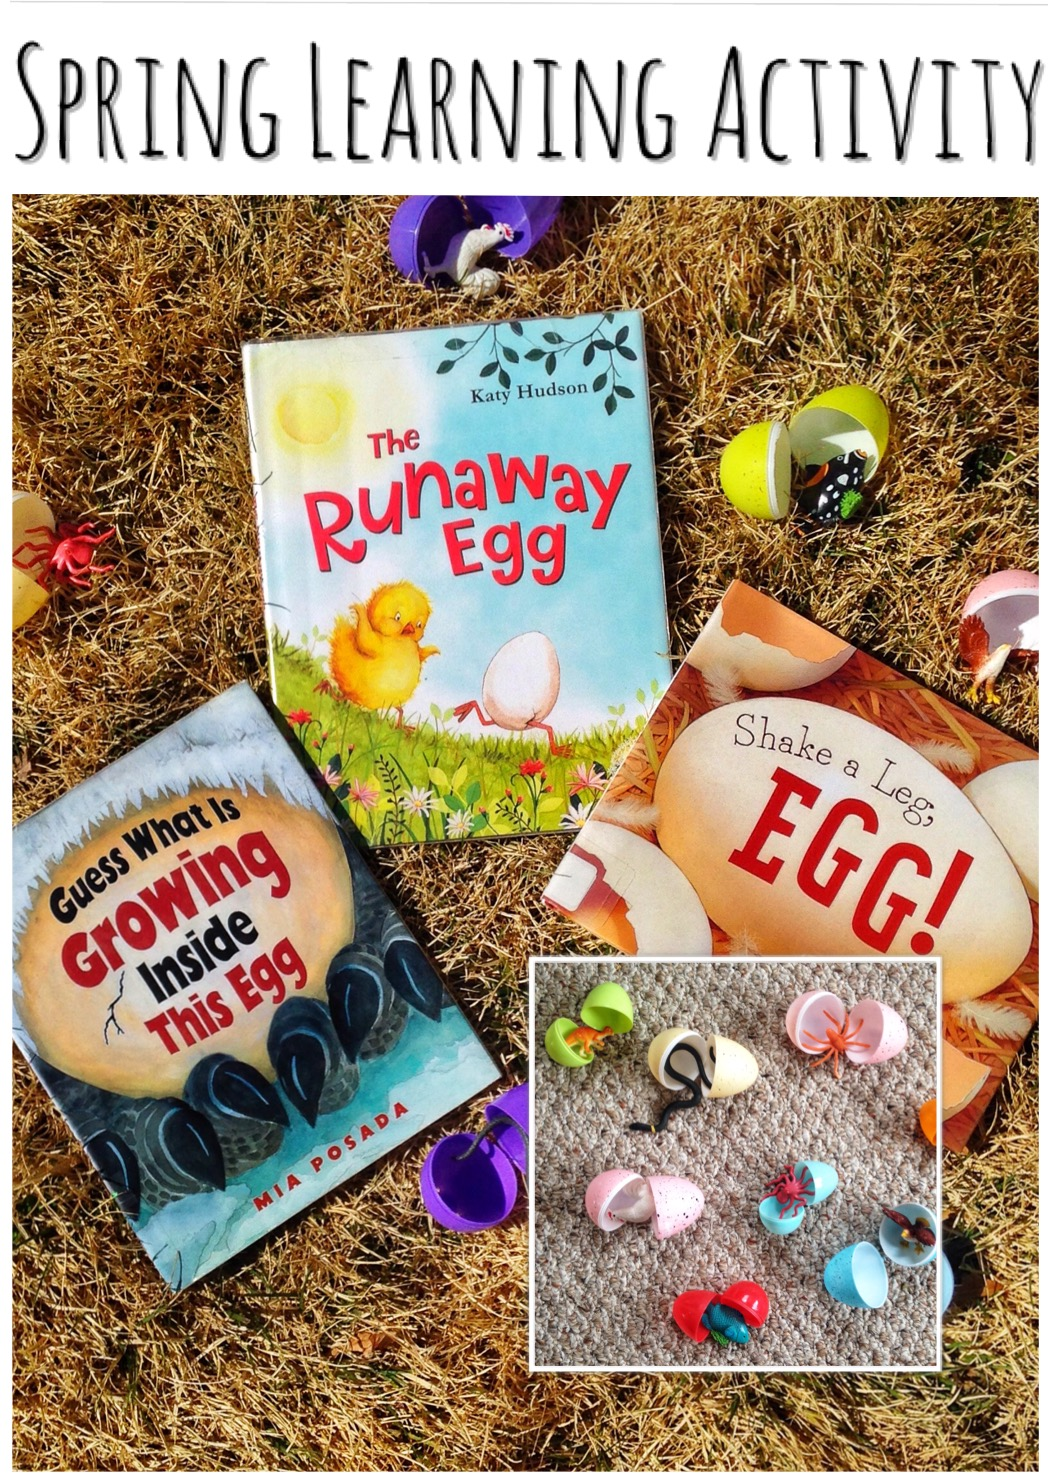 Spring Learning Activity Using Easter Eggs